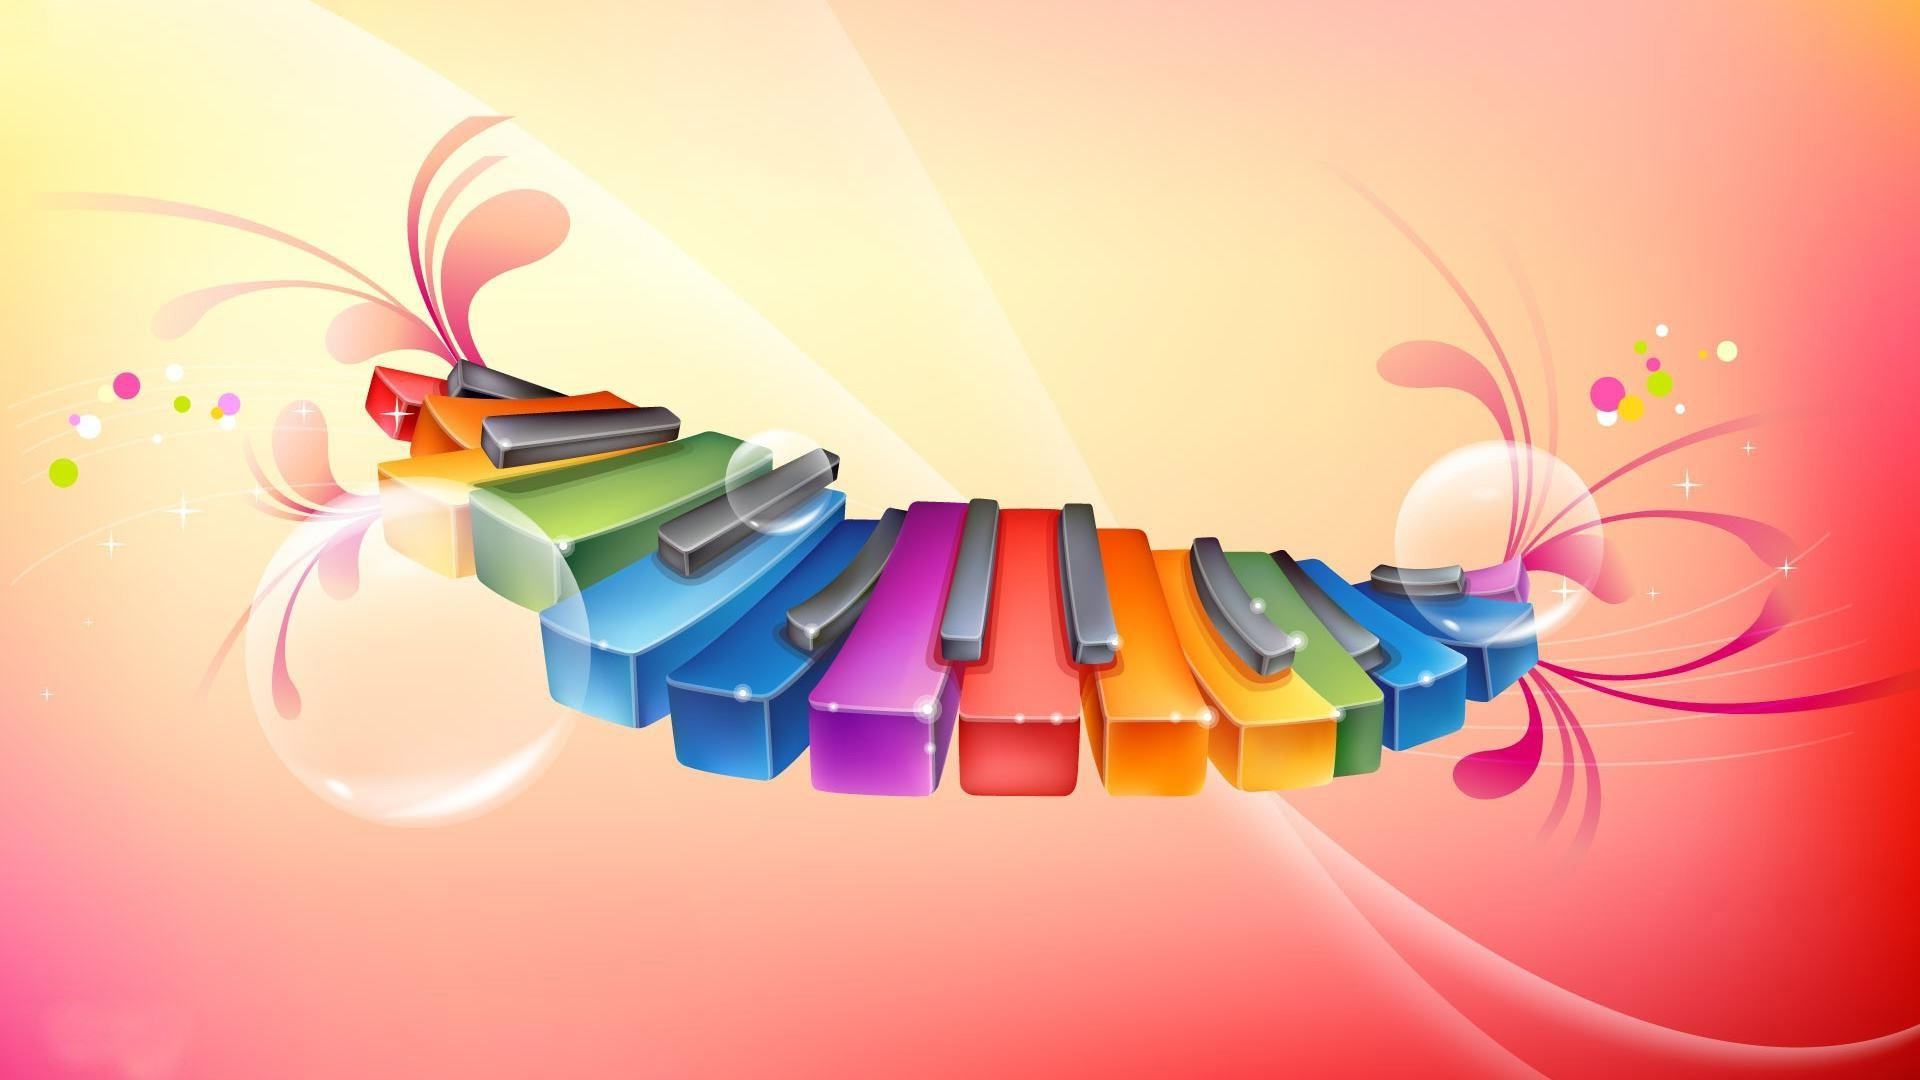 download colorful piano wallpaper gallery